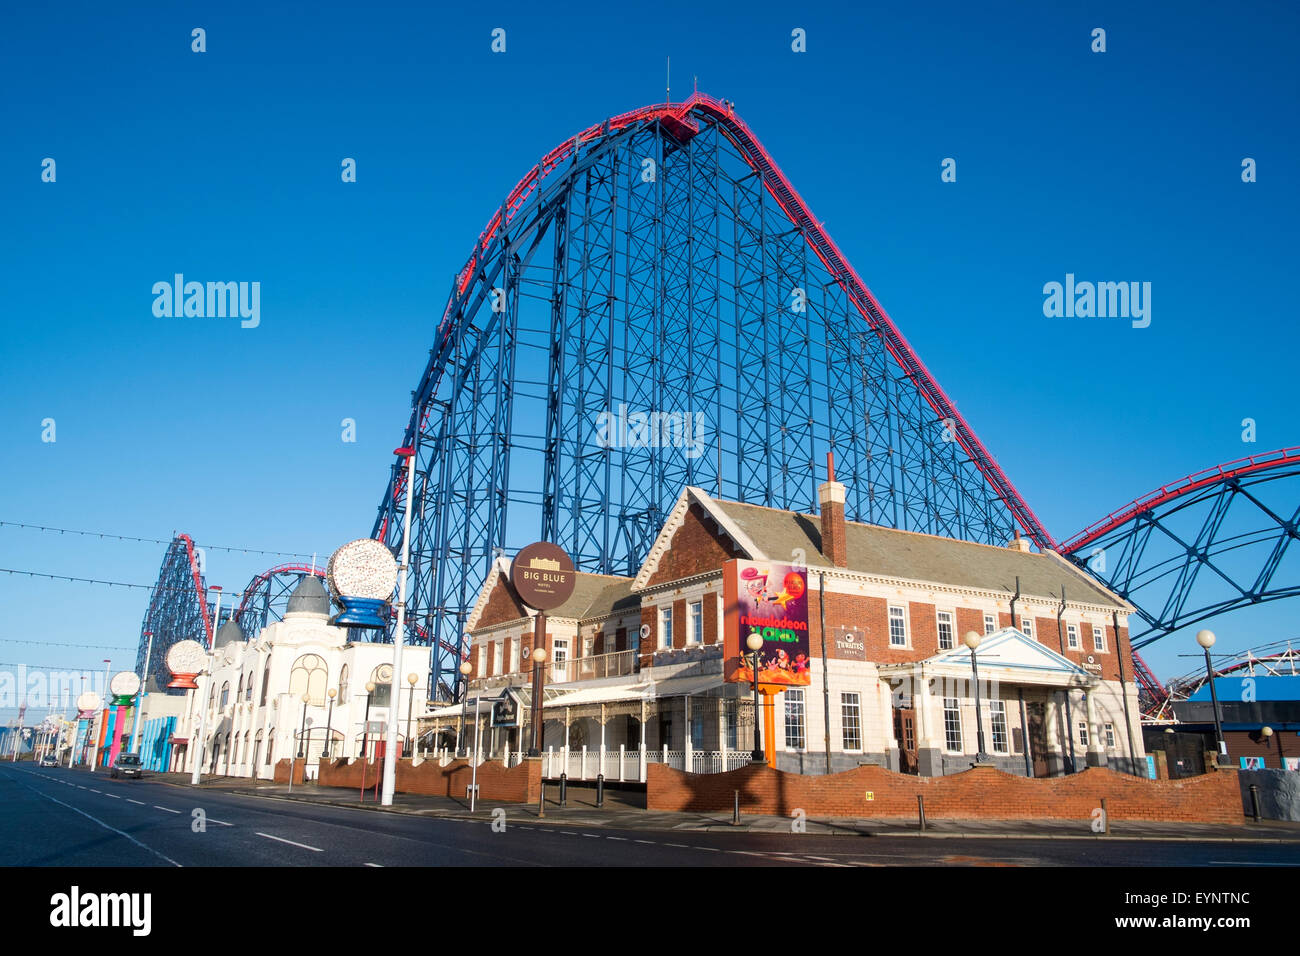 big dipper big one thrill ride at Blackpool pleasure beach holiday resort, lancashire,england - Stock Image